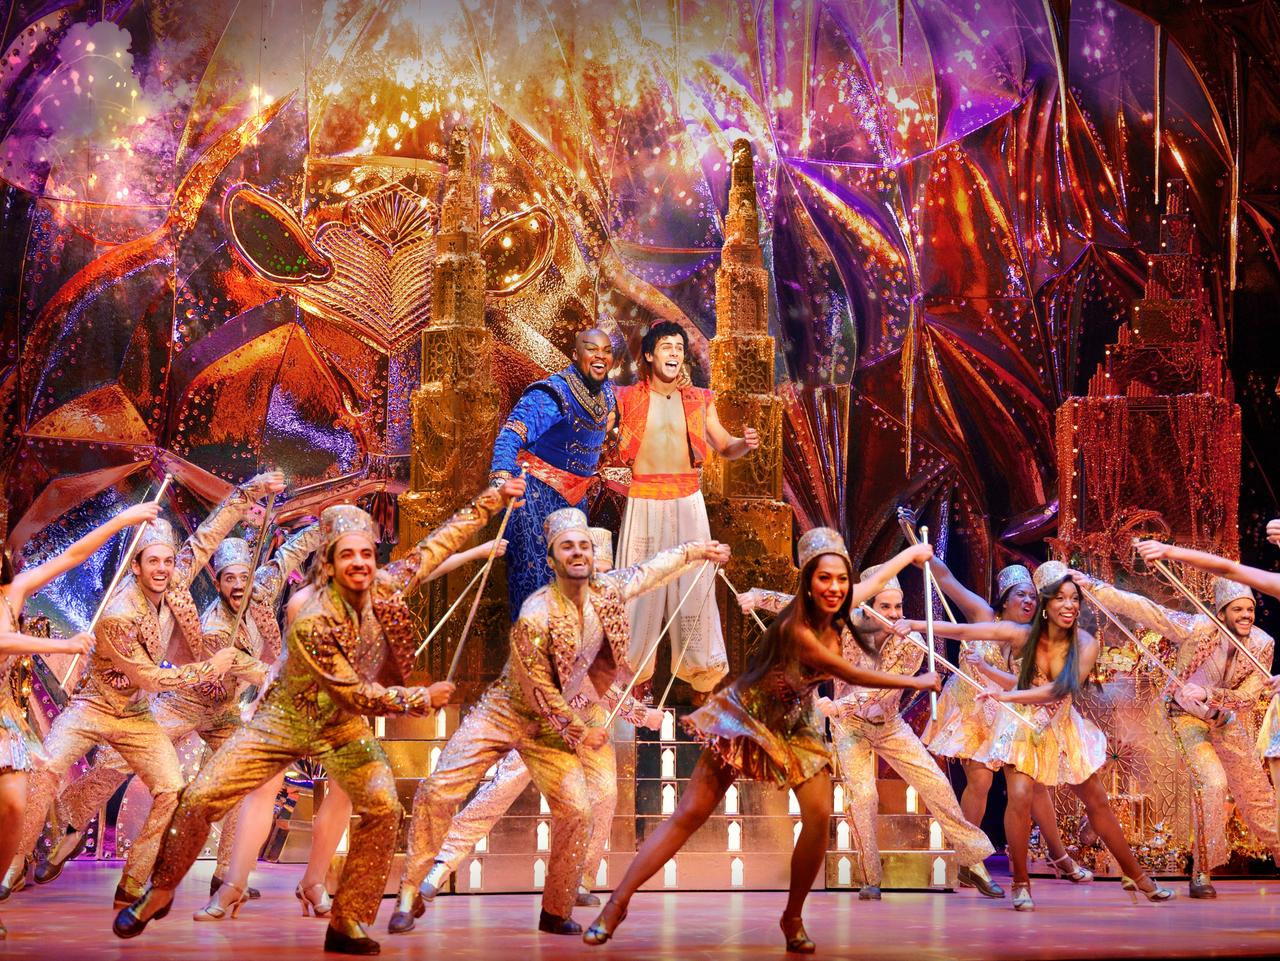 Disney's Aladdin is at the Capitol Theatre these school holidays. FOR SUNDAY TELEGRAPH SCHOOL HOLIDAY GUIDE 18/9/16 - MUST CREDIT